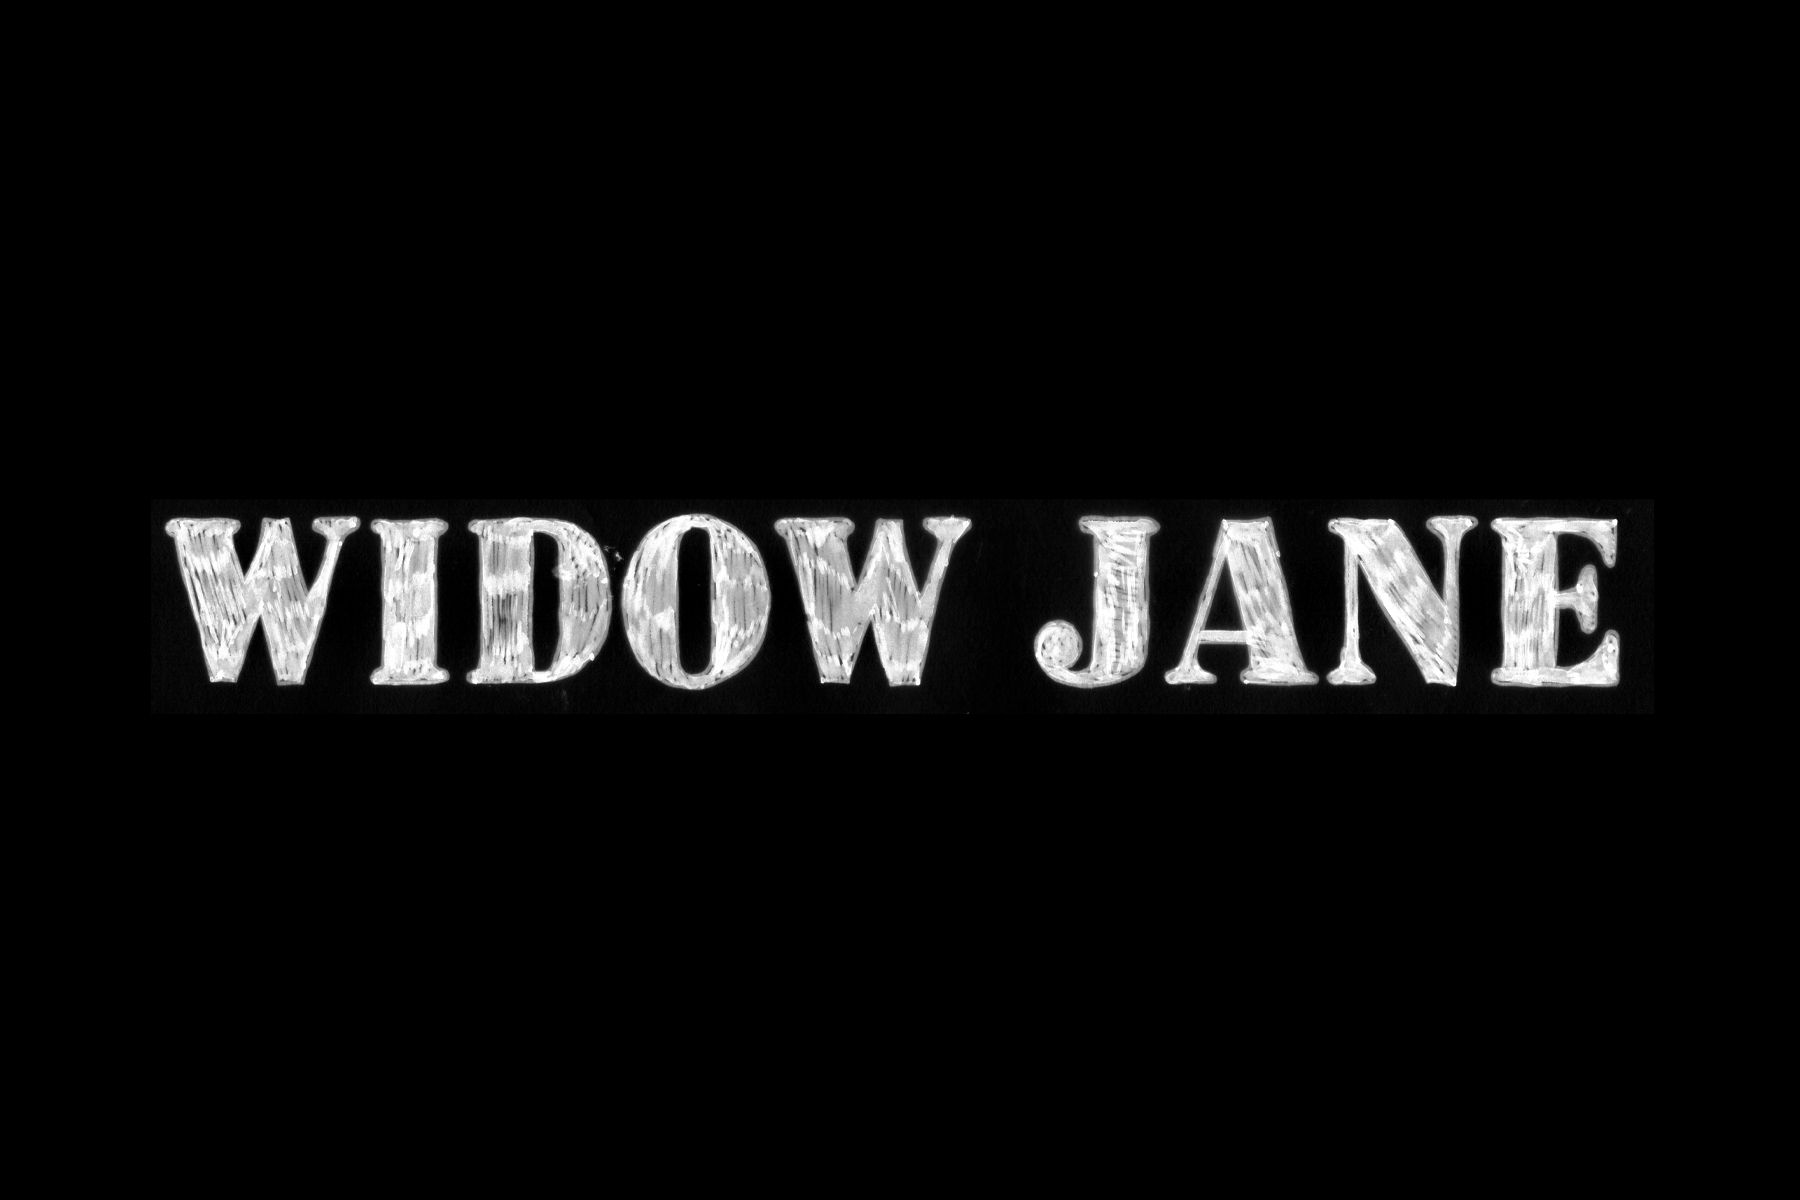 Widow Jane logo hi res.jpg